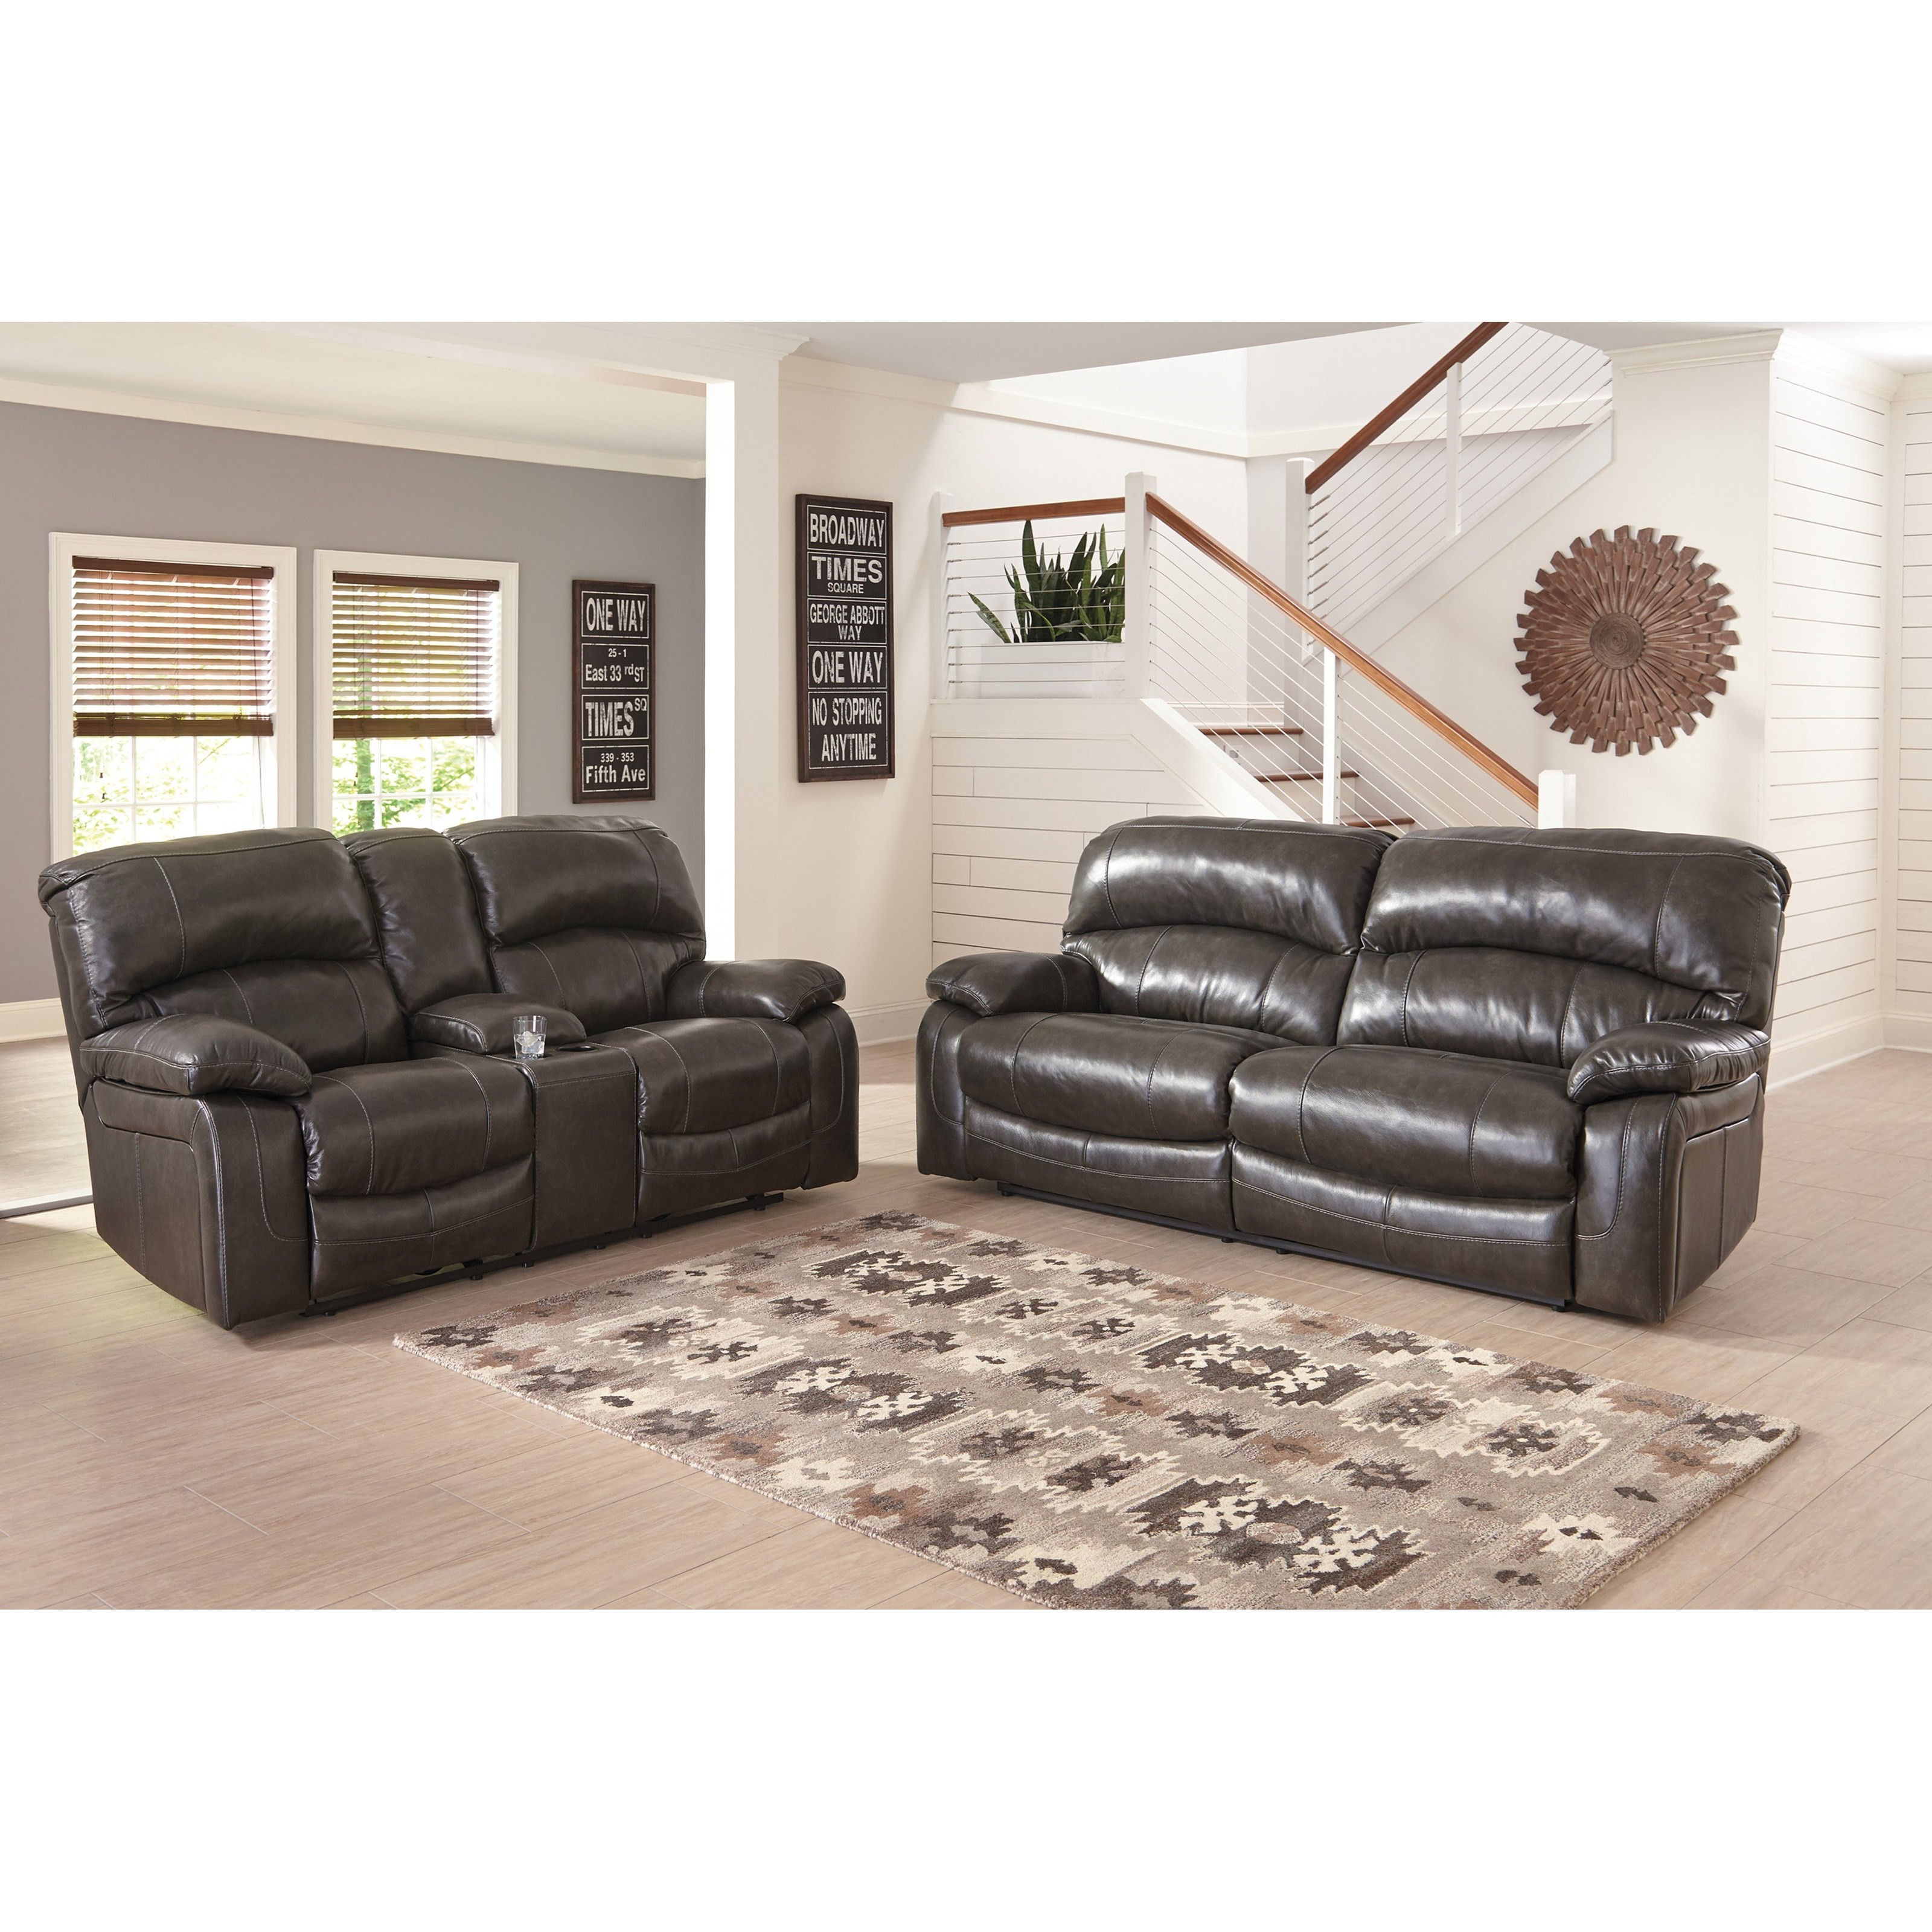 Signature Design by Ashley Damacio - Metal Reclining Living Room Group - Item Number: U98213 Living Room Group 1